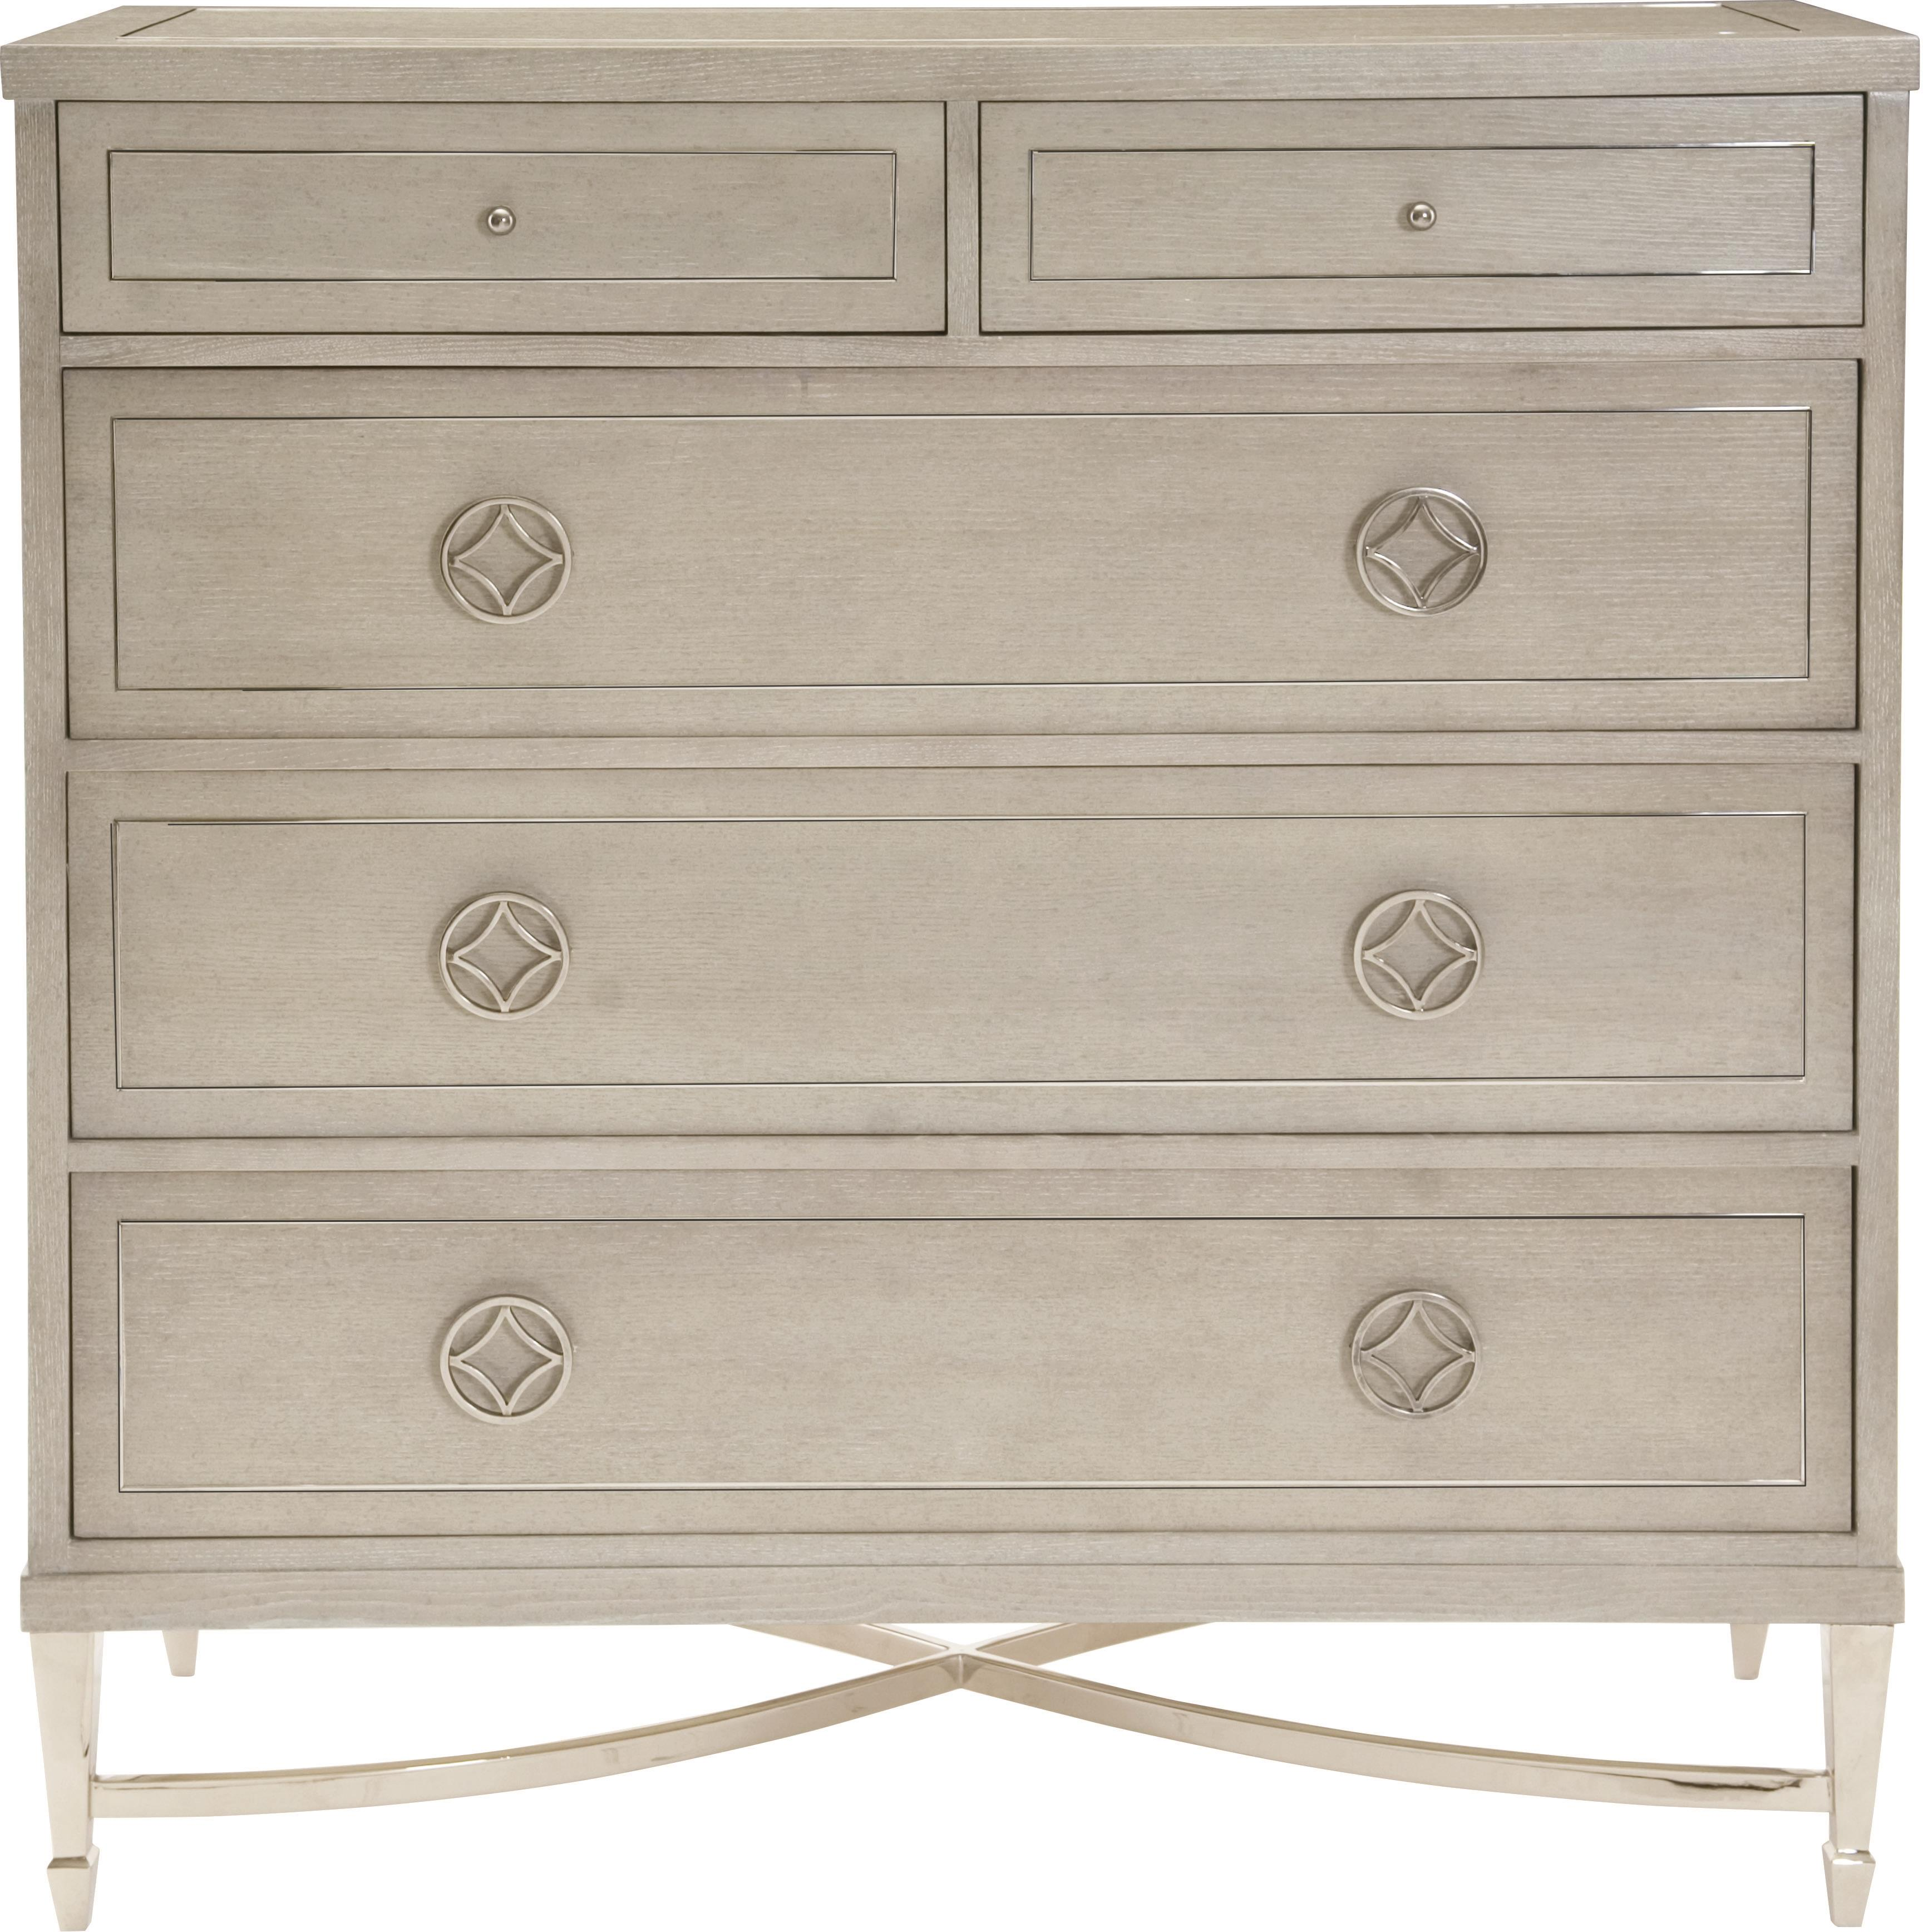 Bernhardt Criteria 363 118g Drawer Chest With 2 Drop Front Drawers Baer 39 S Furniture Drawer